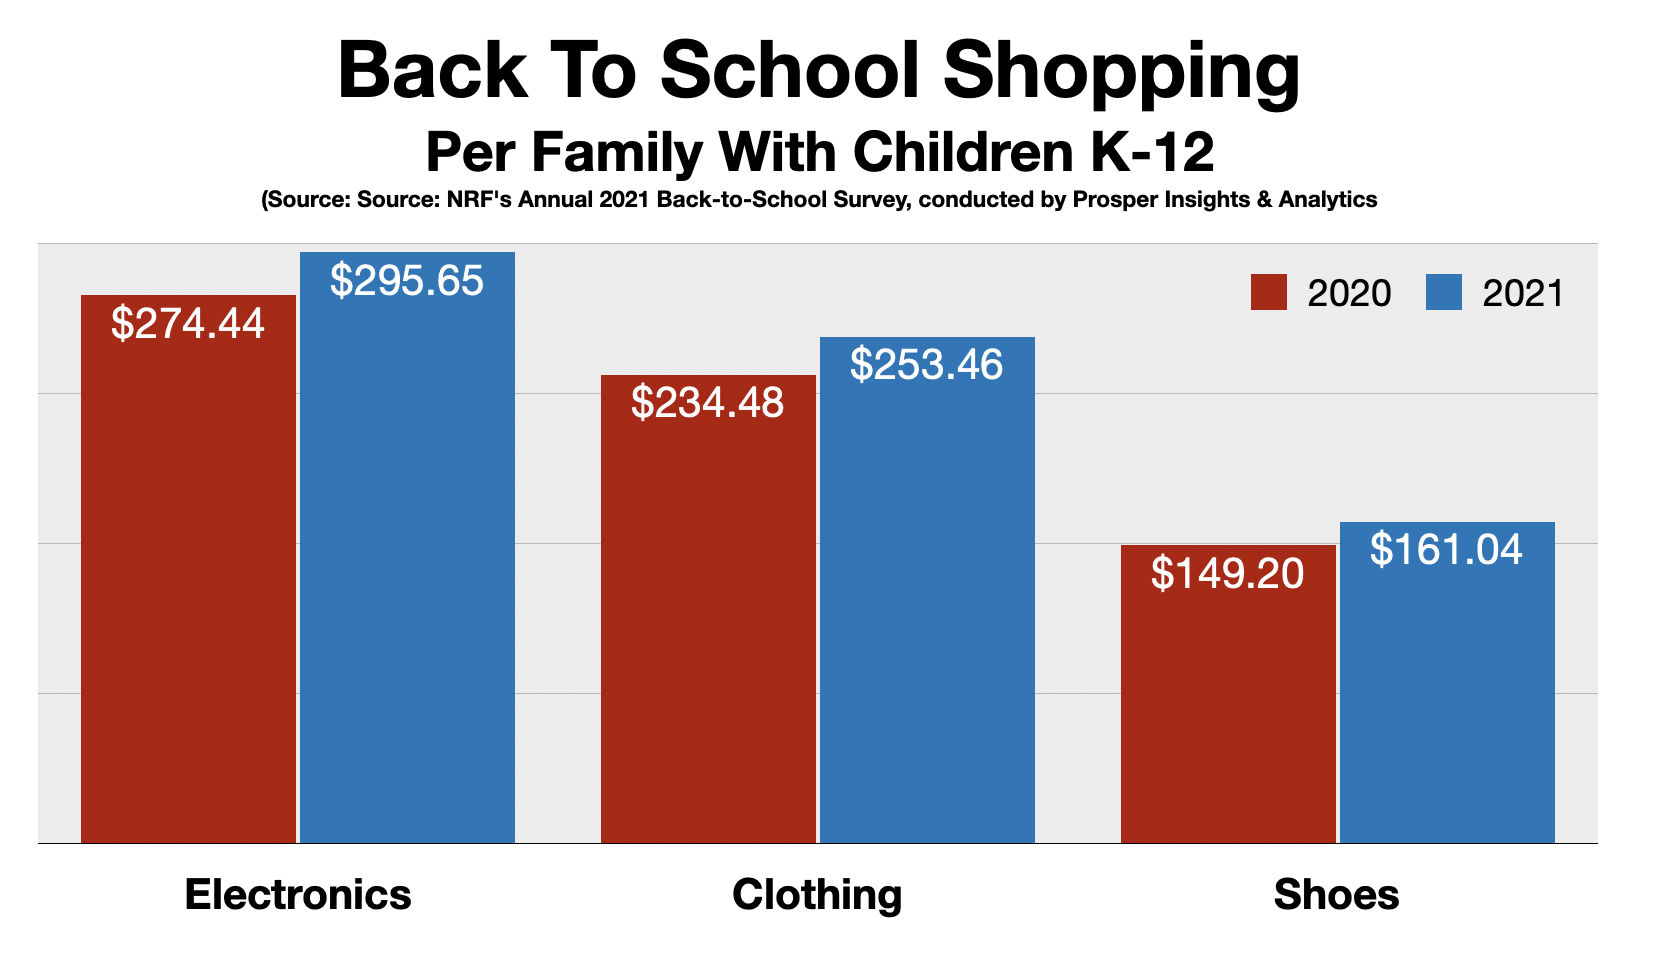 Boston Back To School Shopping 2021 By Category